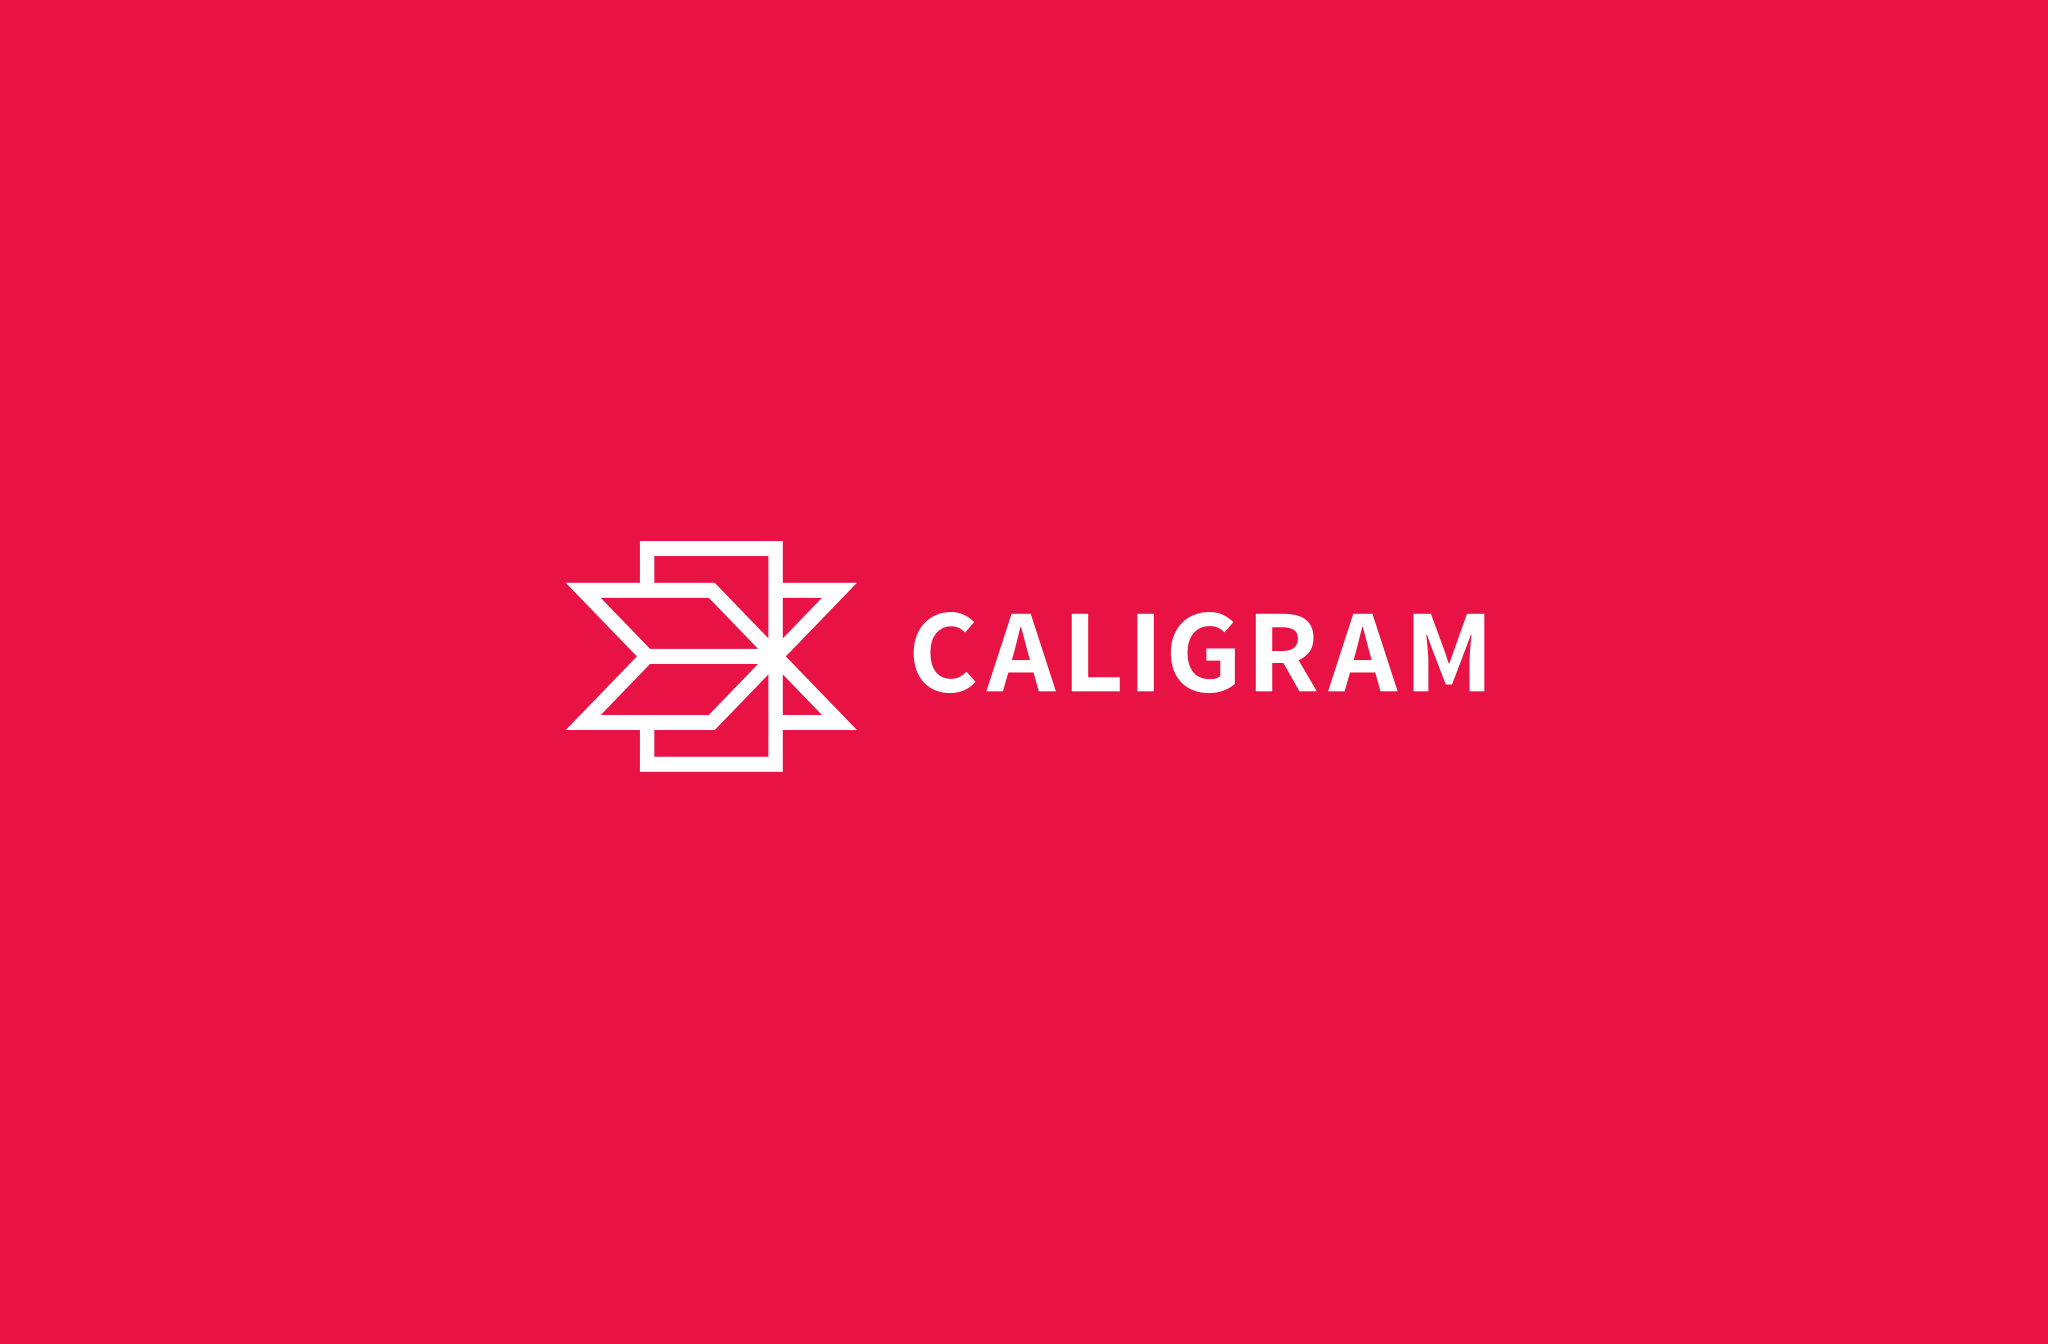 Logo de Caligram